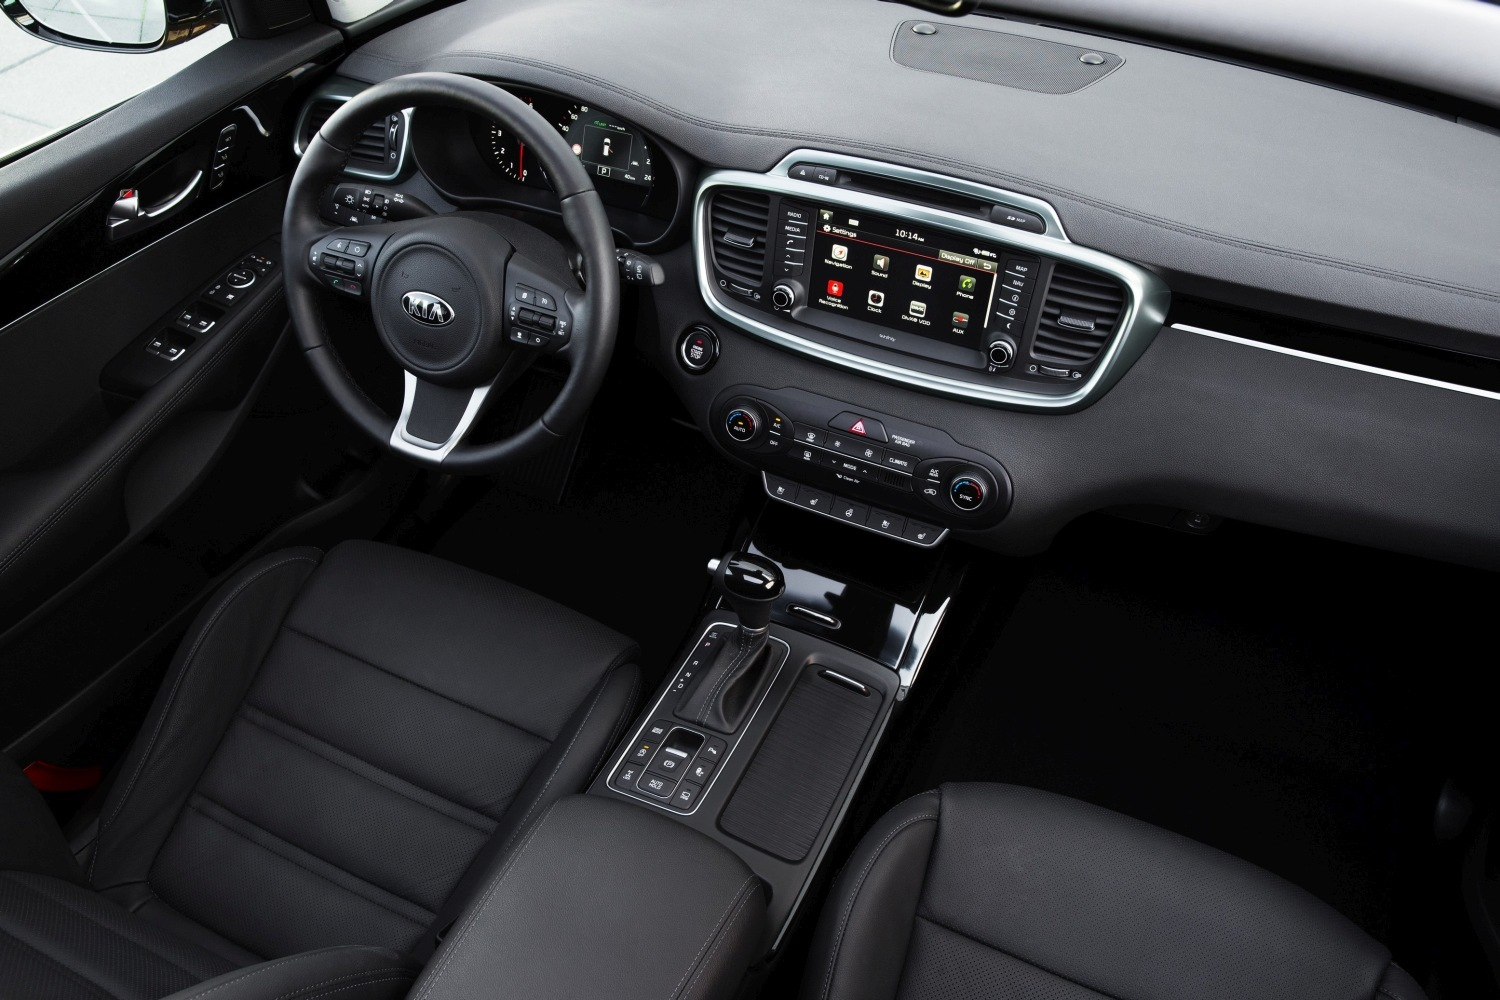 adorable-design-of-the-black-seats-ideas-with-blak-and-silver-accents-dash-ideas-as-the-kia-sorento-2015-interior